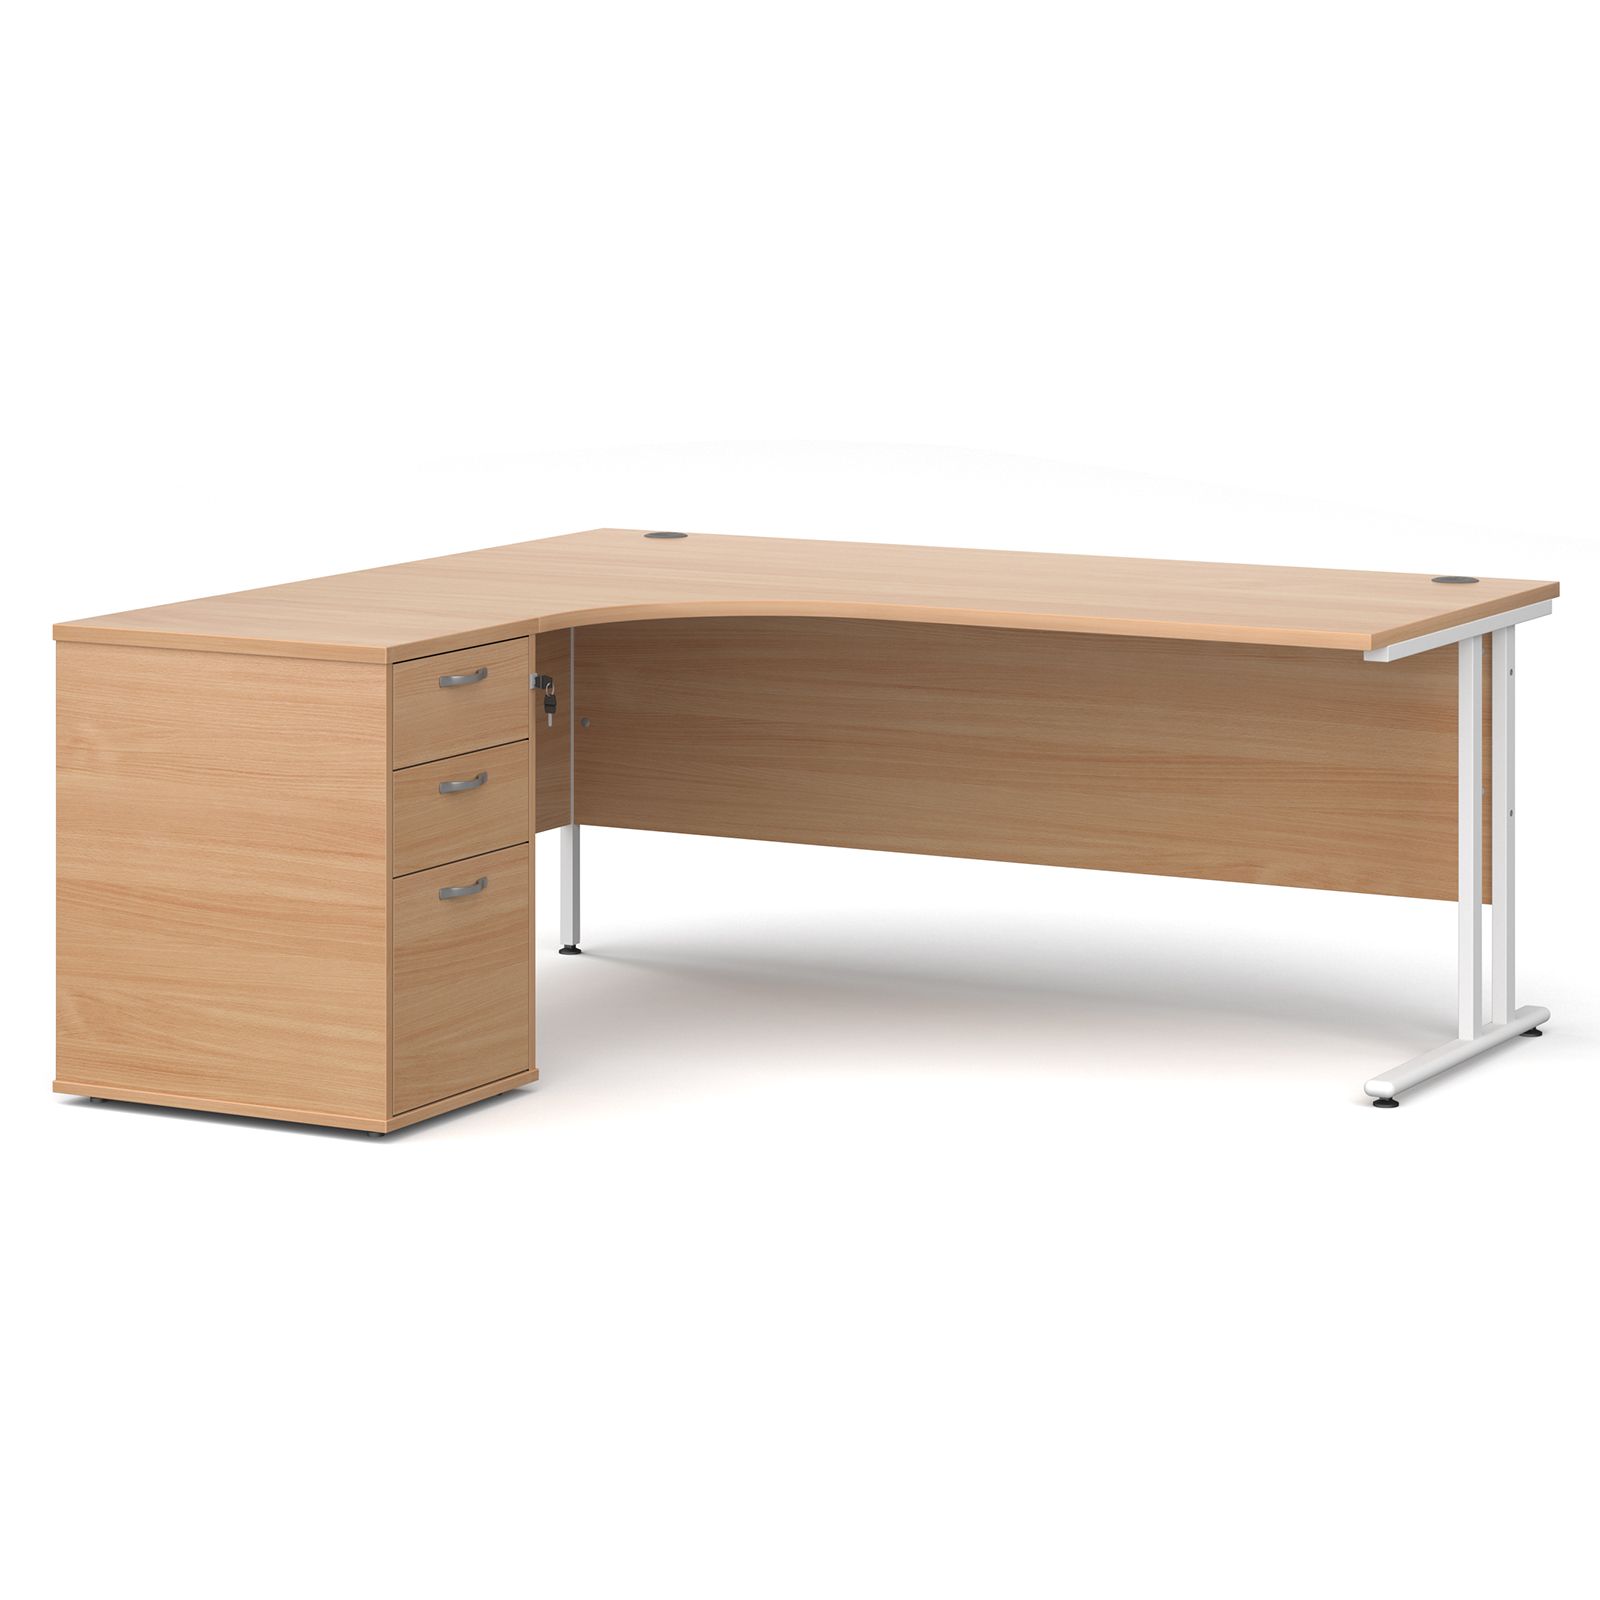 Left Handed Maestro 25 left hand ergonomic desk 1800mm with white cantilever frame and desk high pedestal - beech